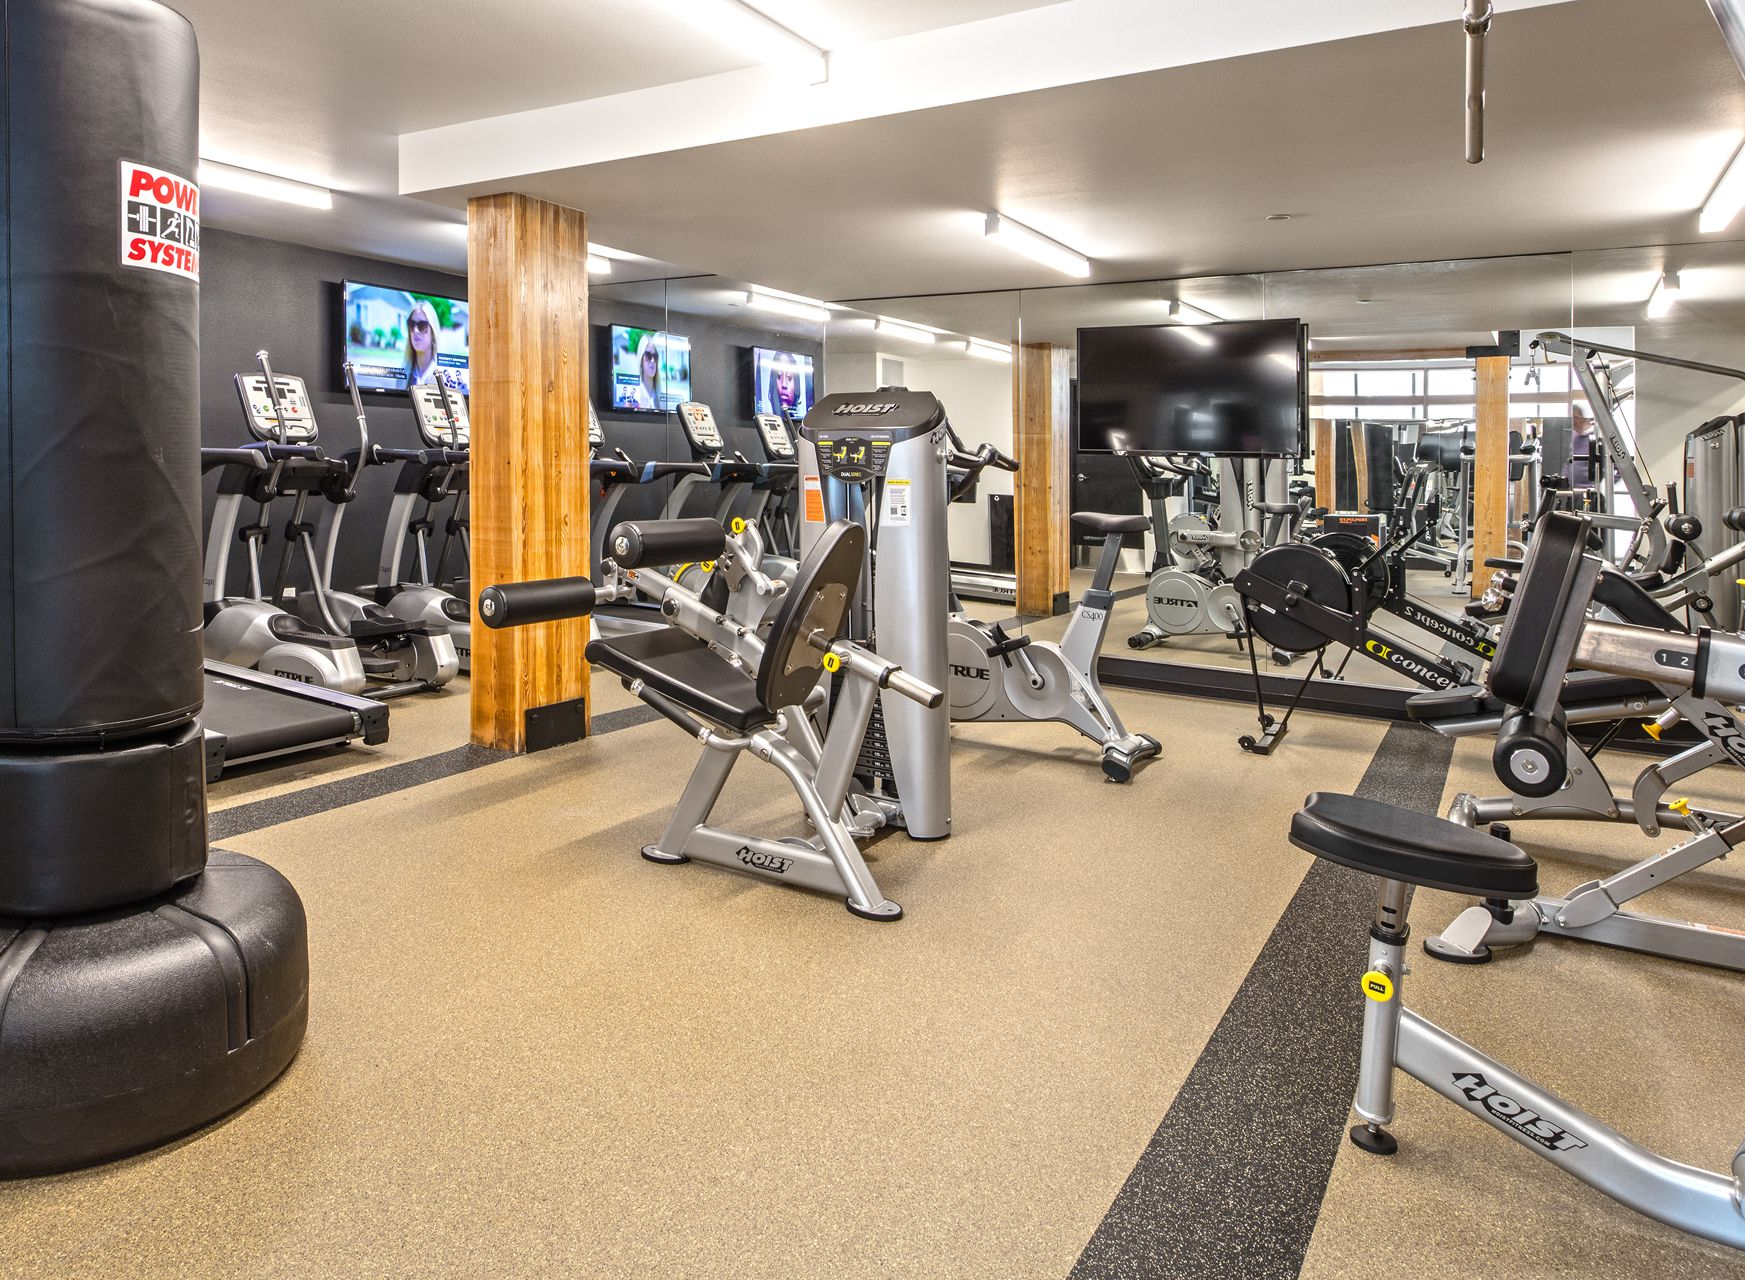 The fitness center has ellipticals, spinning bikes, and